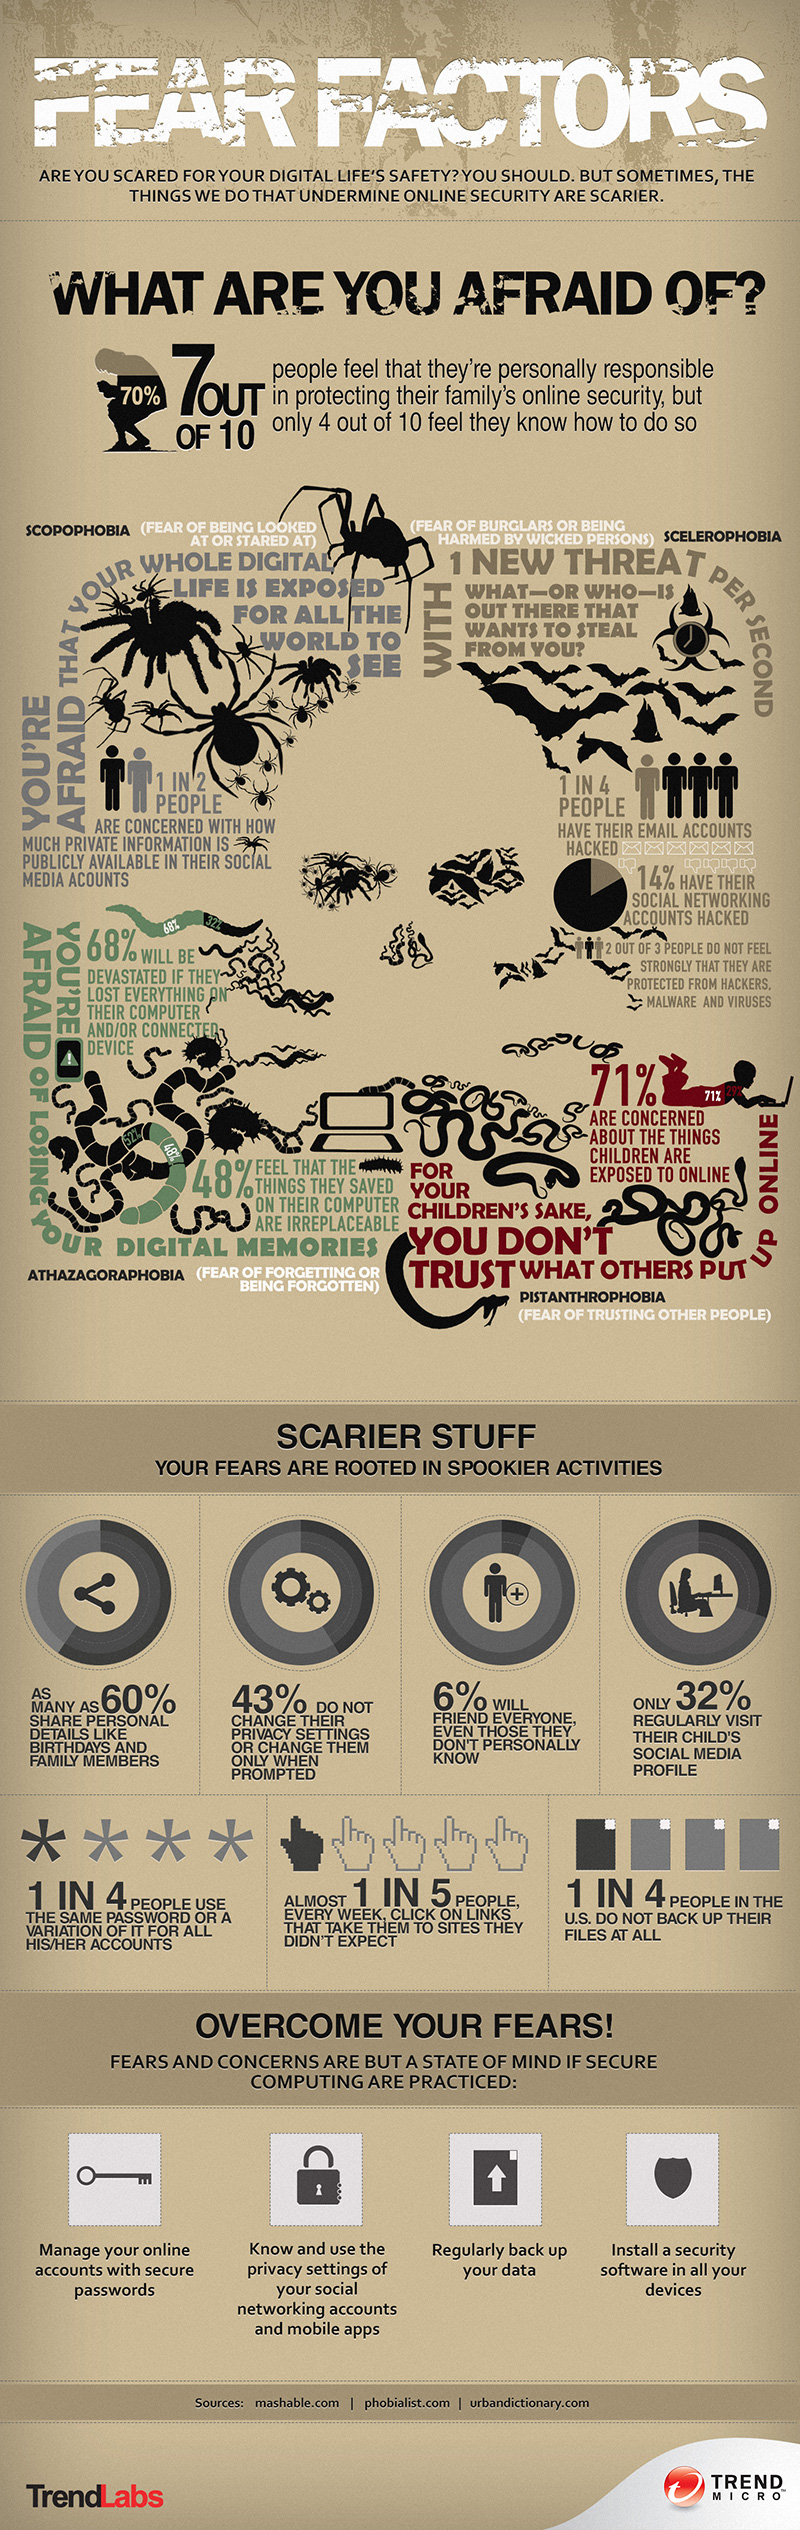 Online Privacy Fears-Infographic